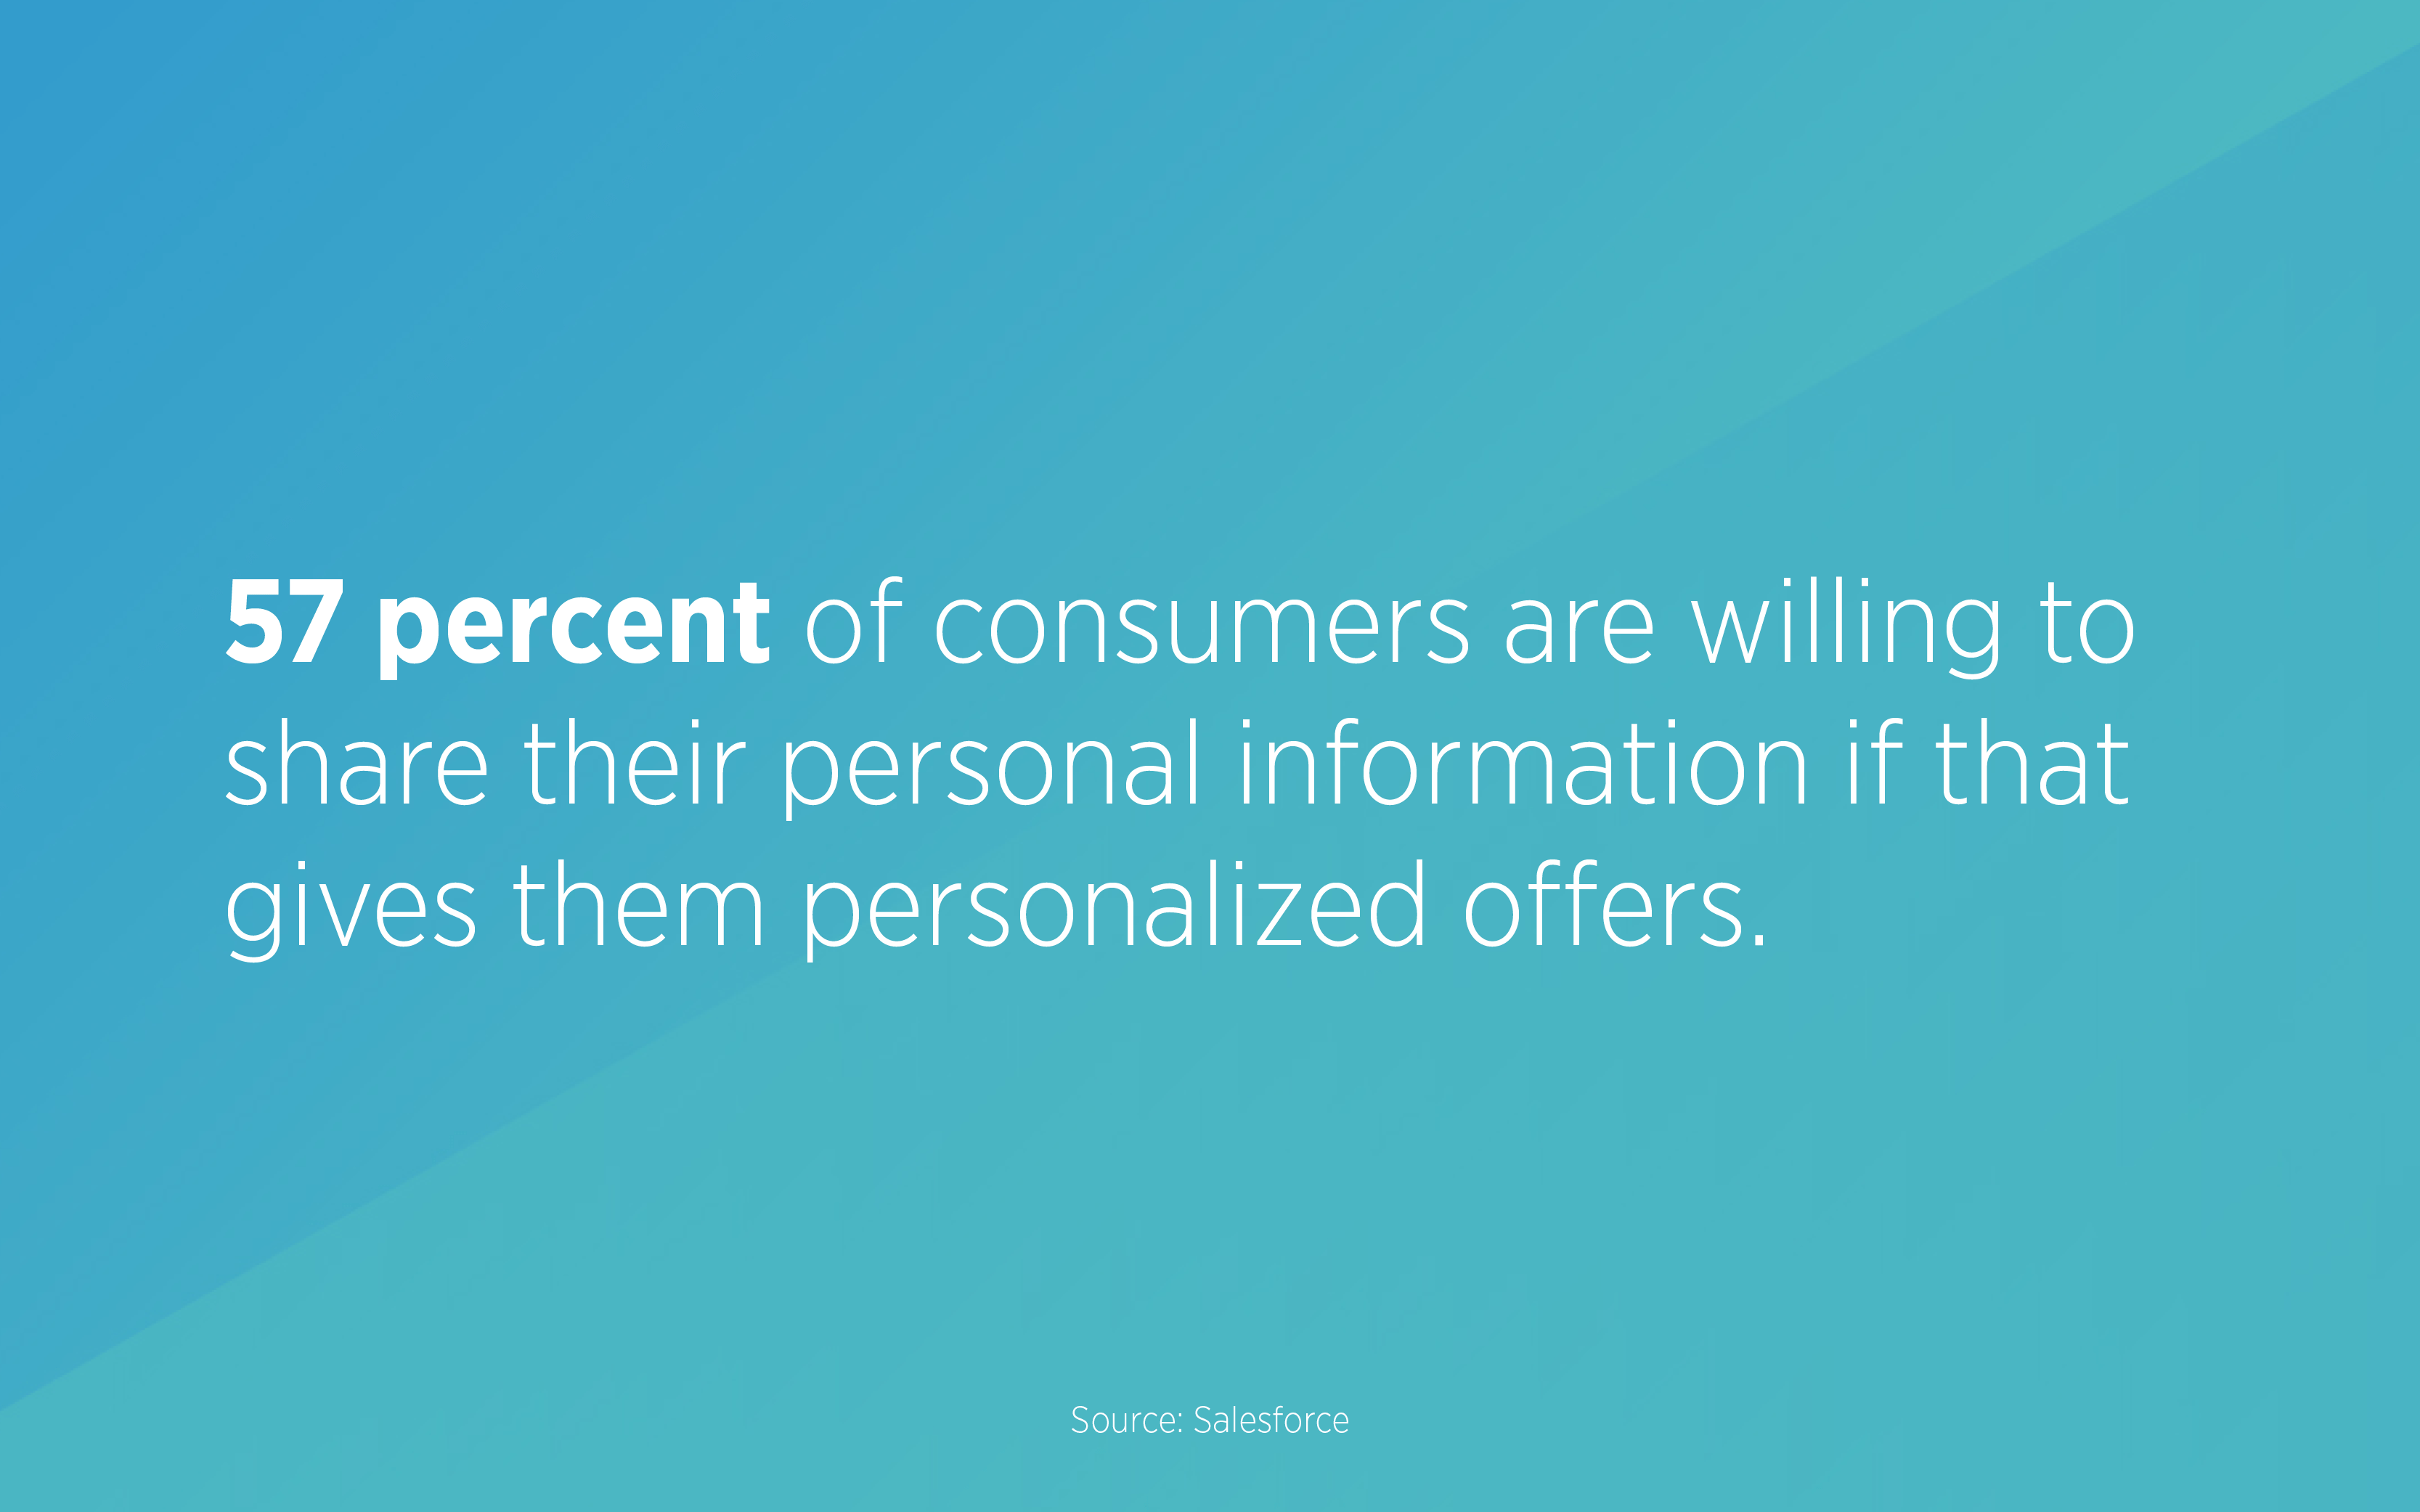 57 percent of consumers are willing to share their personal information if that gives them personalized offers.